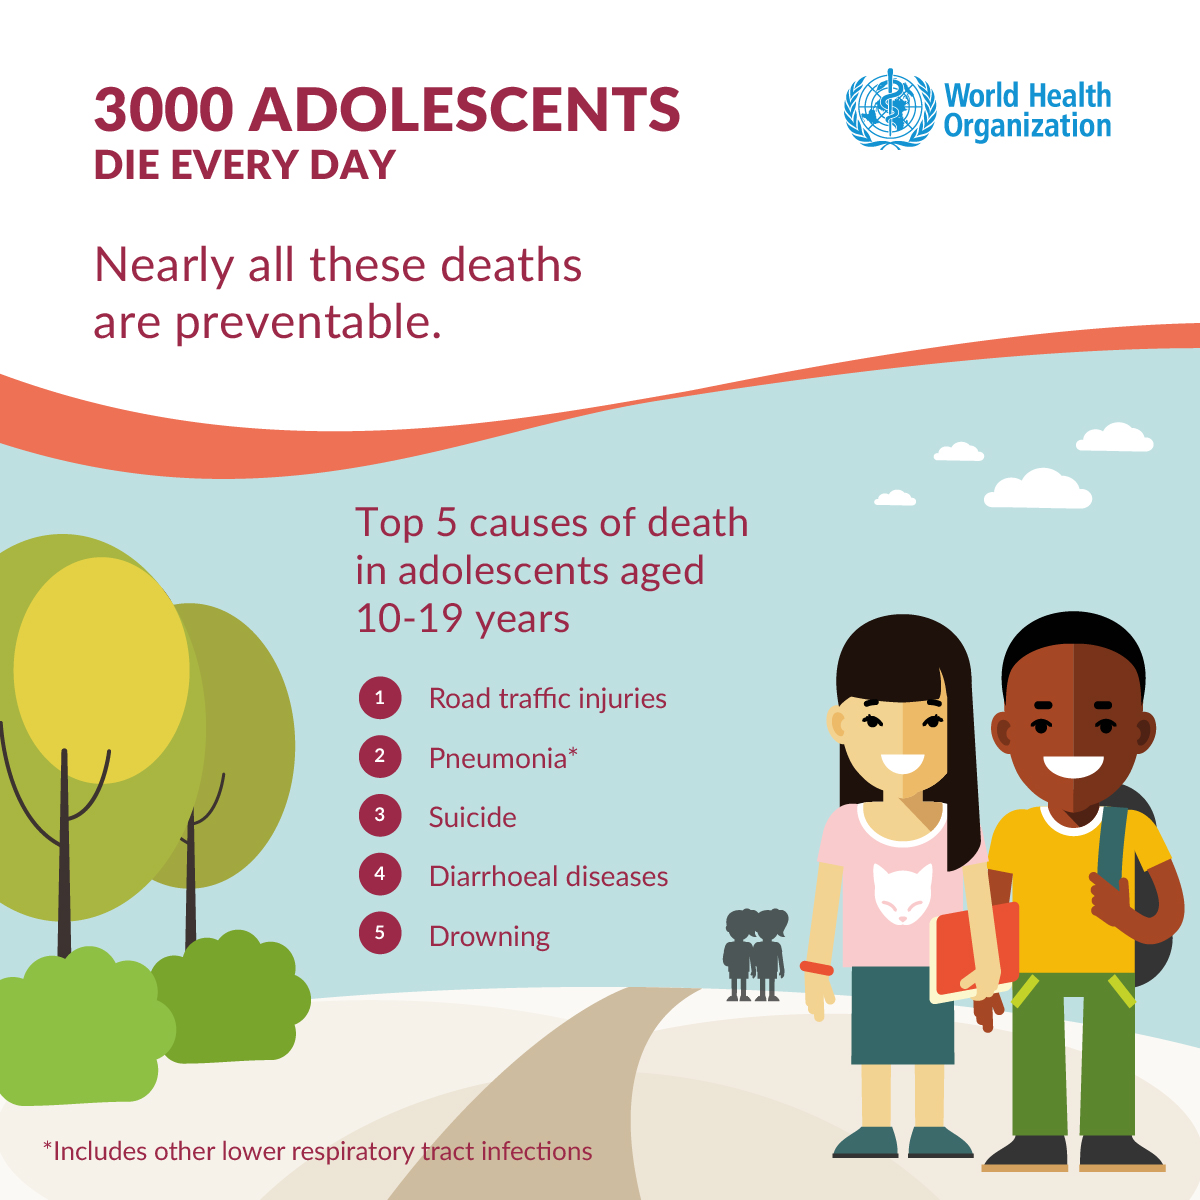 adolescent-causes-death-infographic